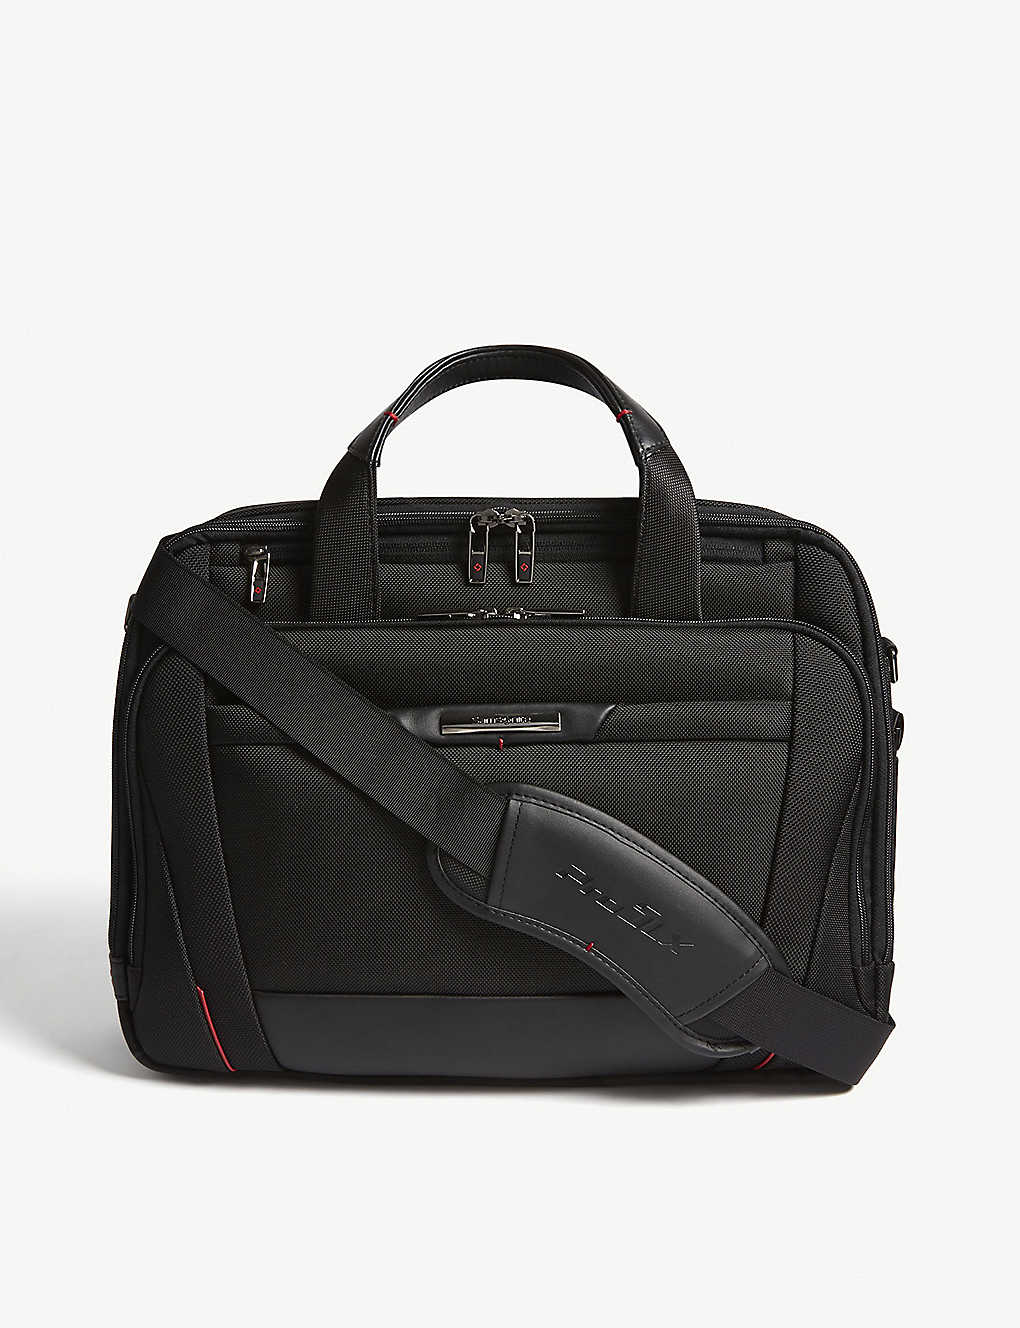 3ef809fe92 SAMSONITE - Pro-Dlx 5 nylon briefcase 14.1'' | Selfridges.com